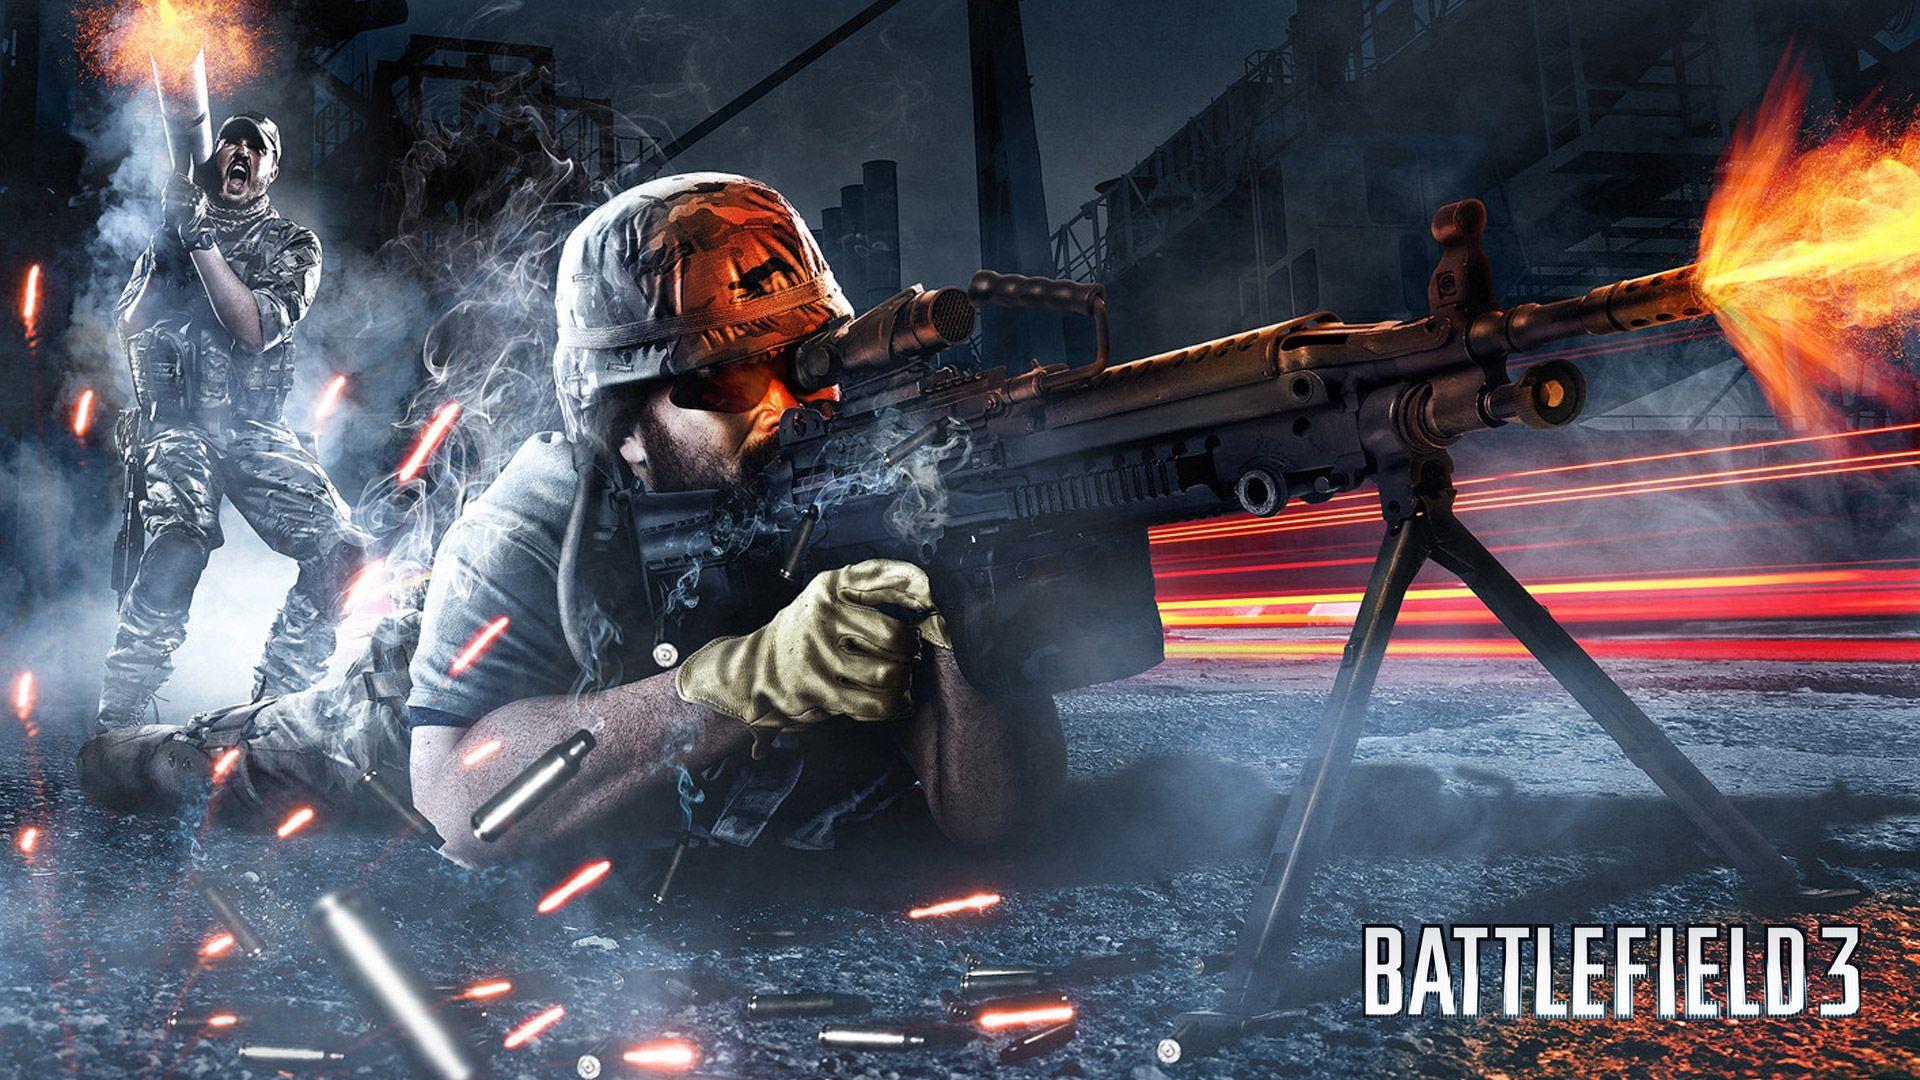 Download Wallpaper 1280x1280 Battlefield 4 Game Ea: Download Battlefield 3 Wallpaper 293109